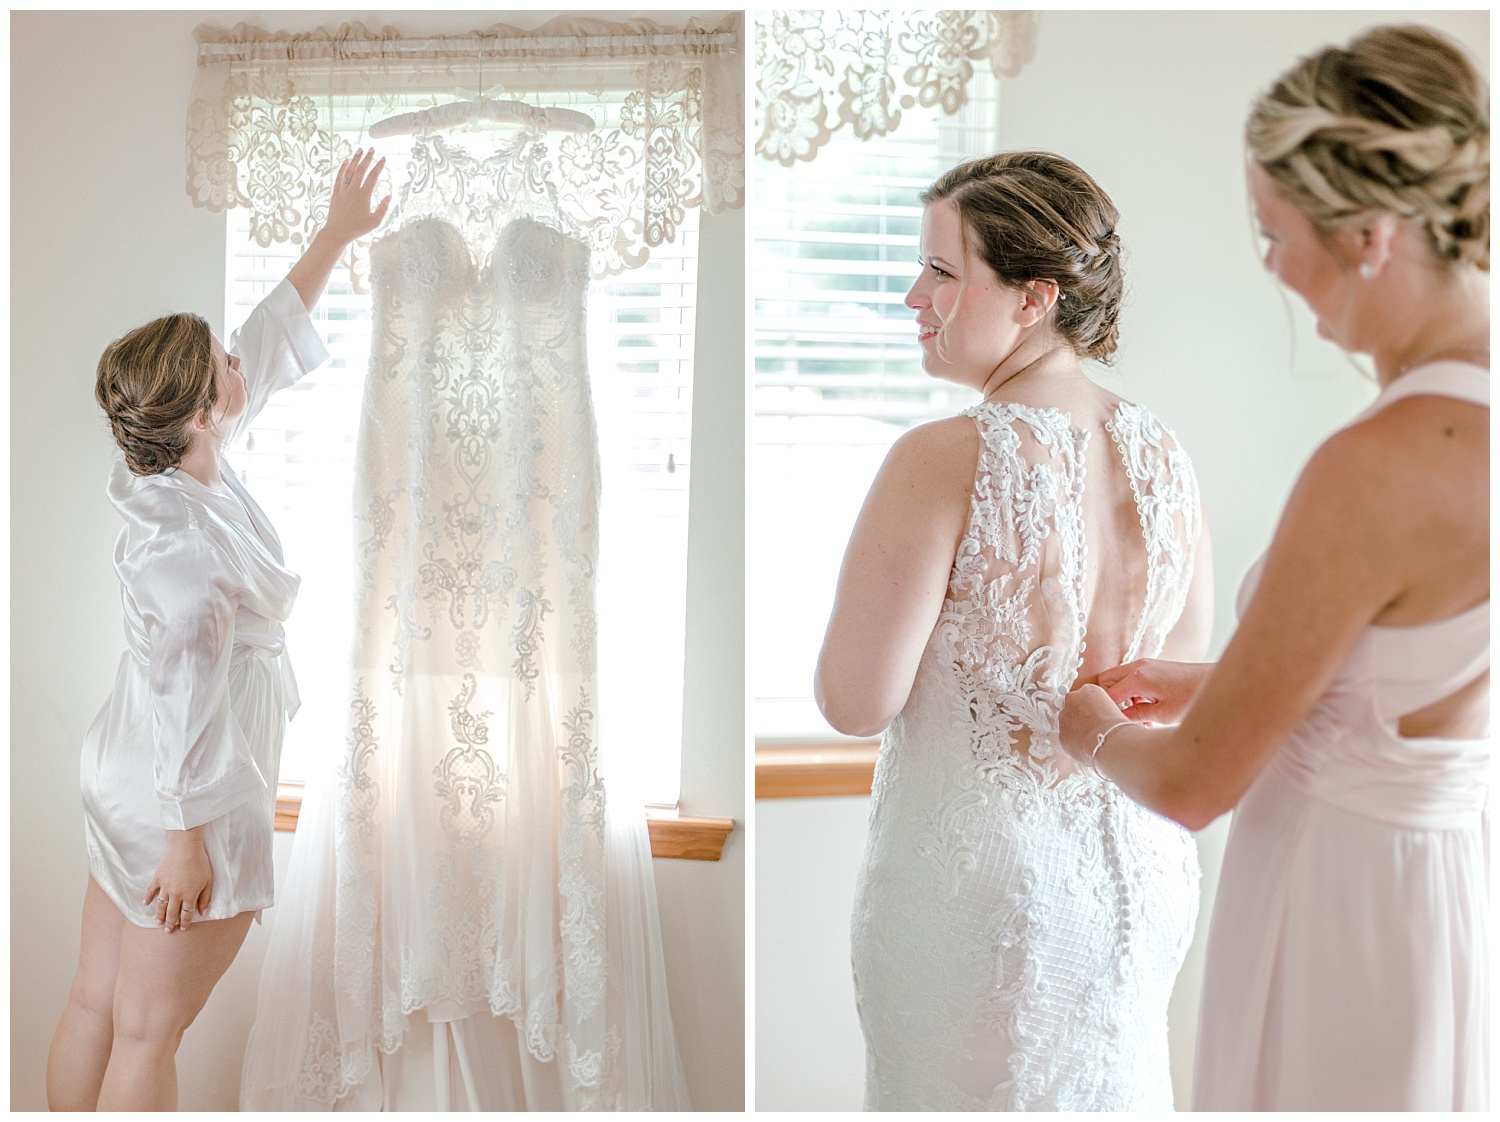 Navy and Blush pink inspired summertime whitewoods wedding in Northeastern Pennsylvania NEPA wapwallopen wedding venue by  PA based wedding and lifestyle photographer Lytle photography_0009.jpg